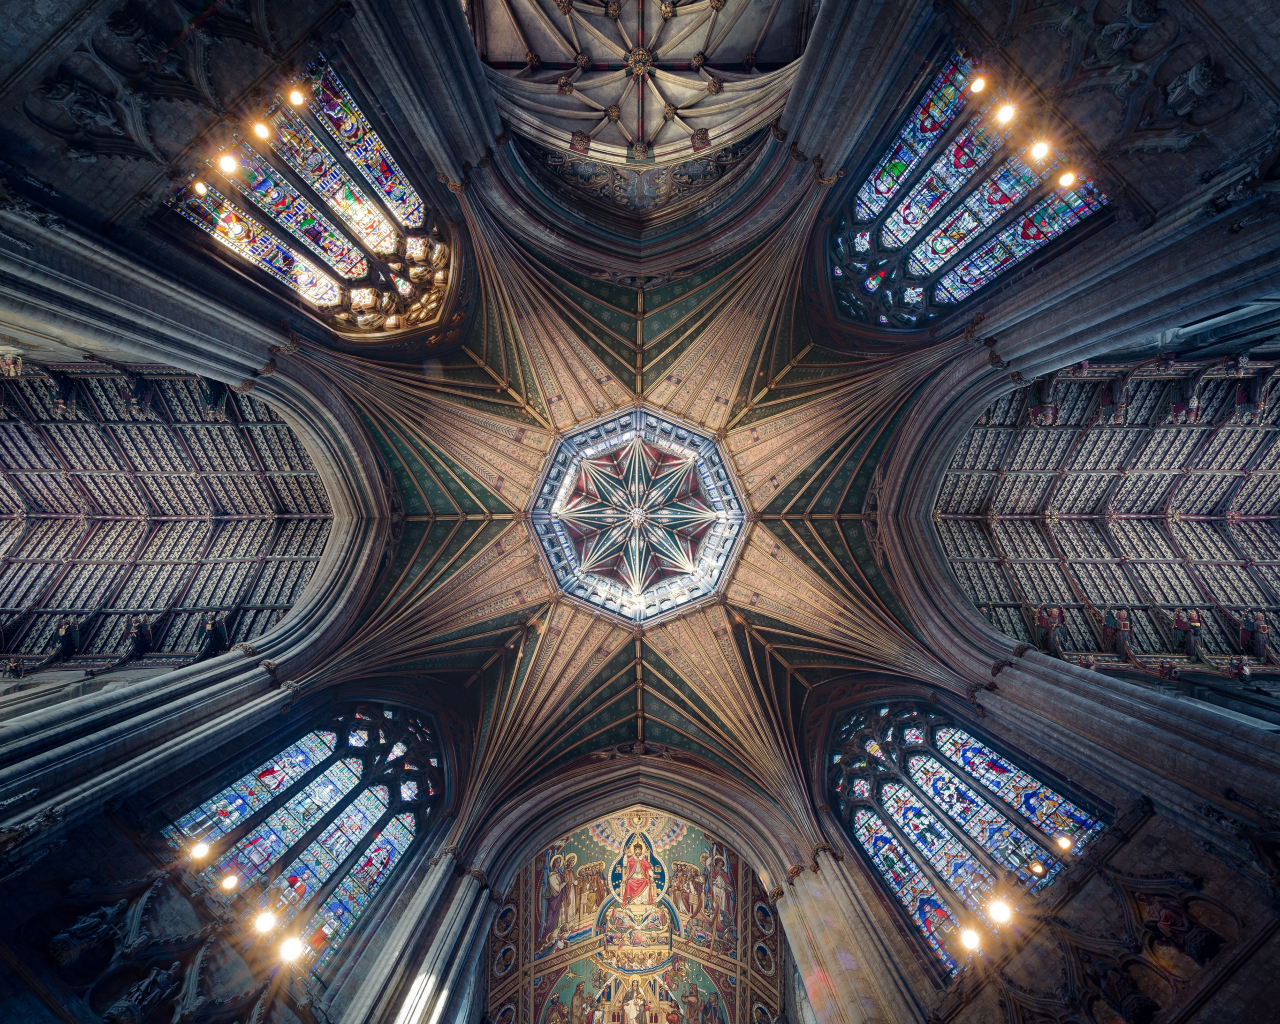 Ceiling, cathedral, symmetrical interior, architecture, 1280x1024 wallpaper